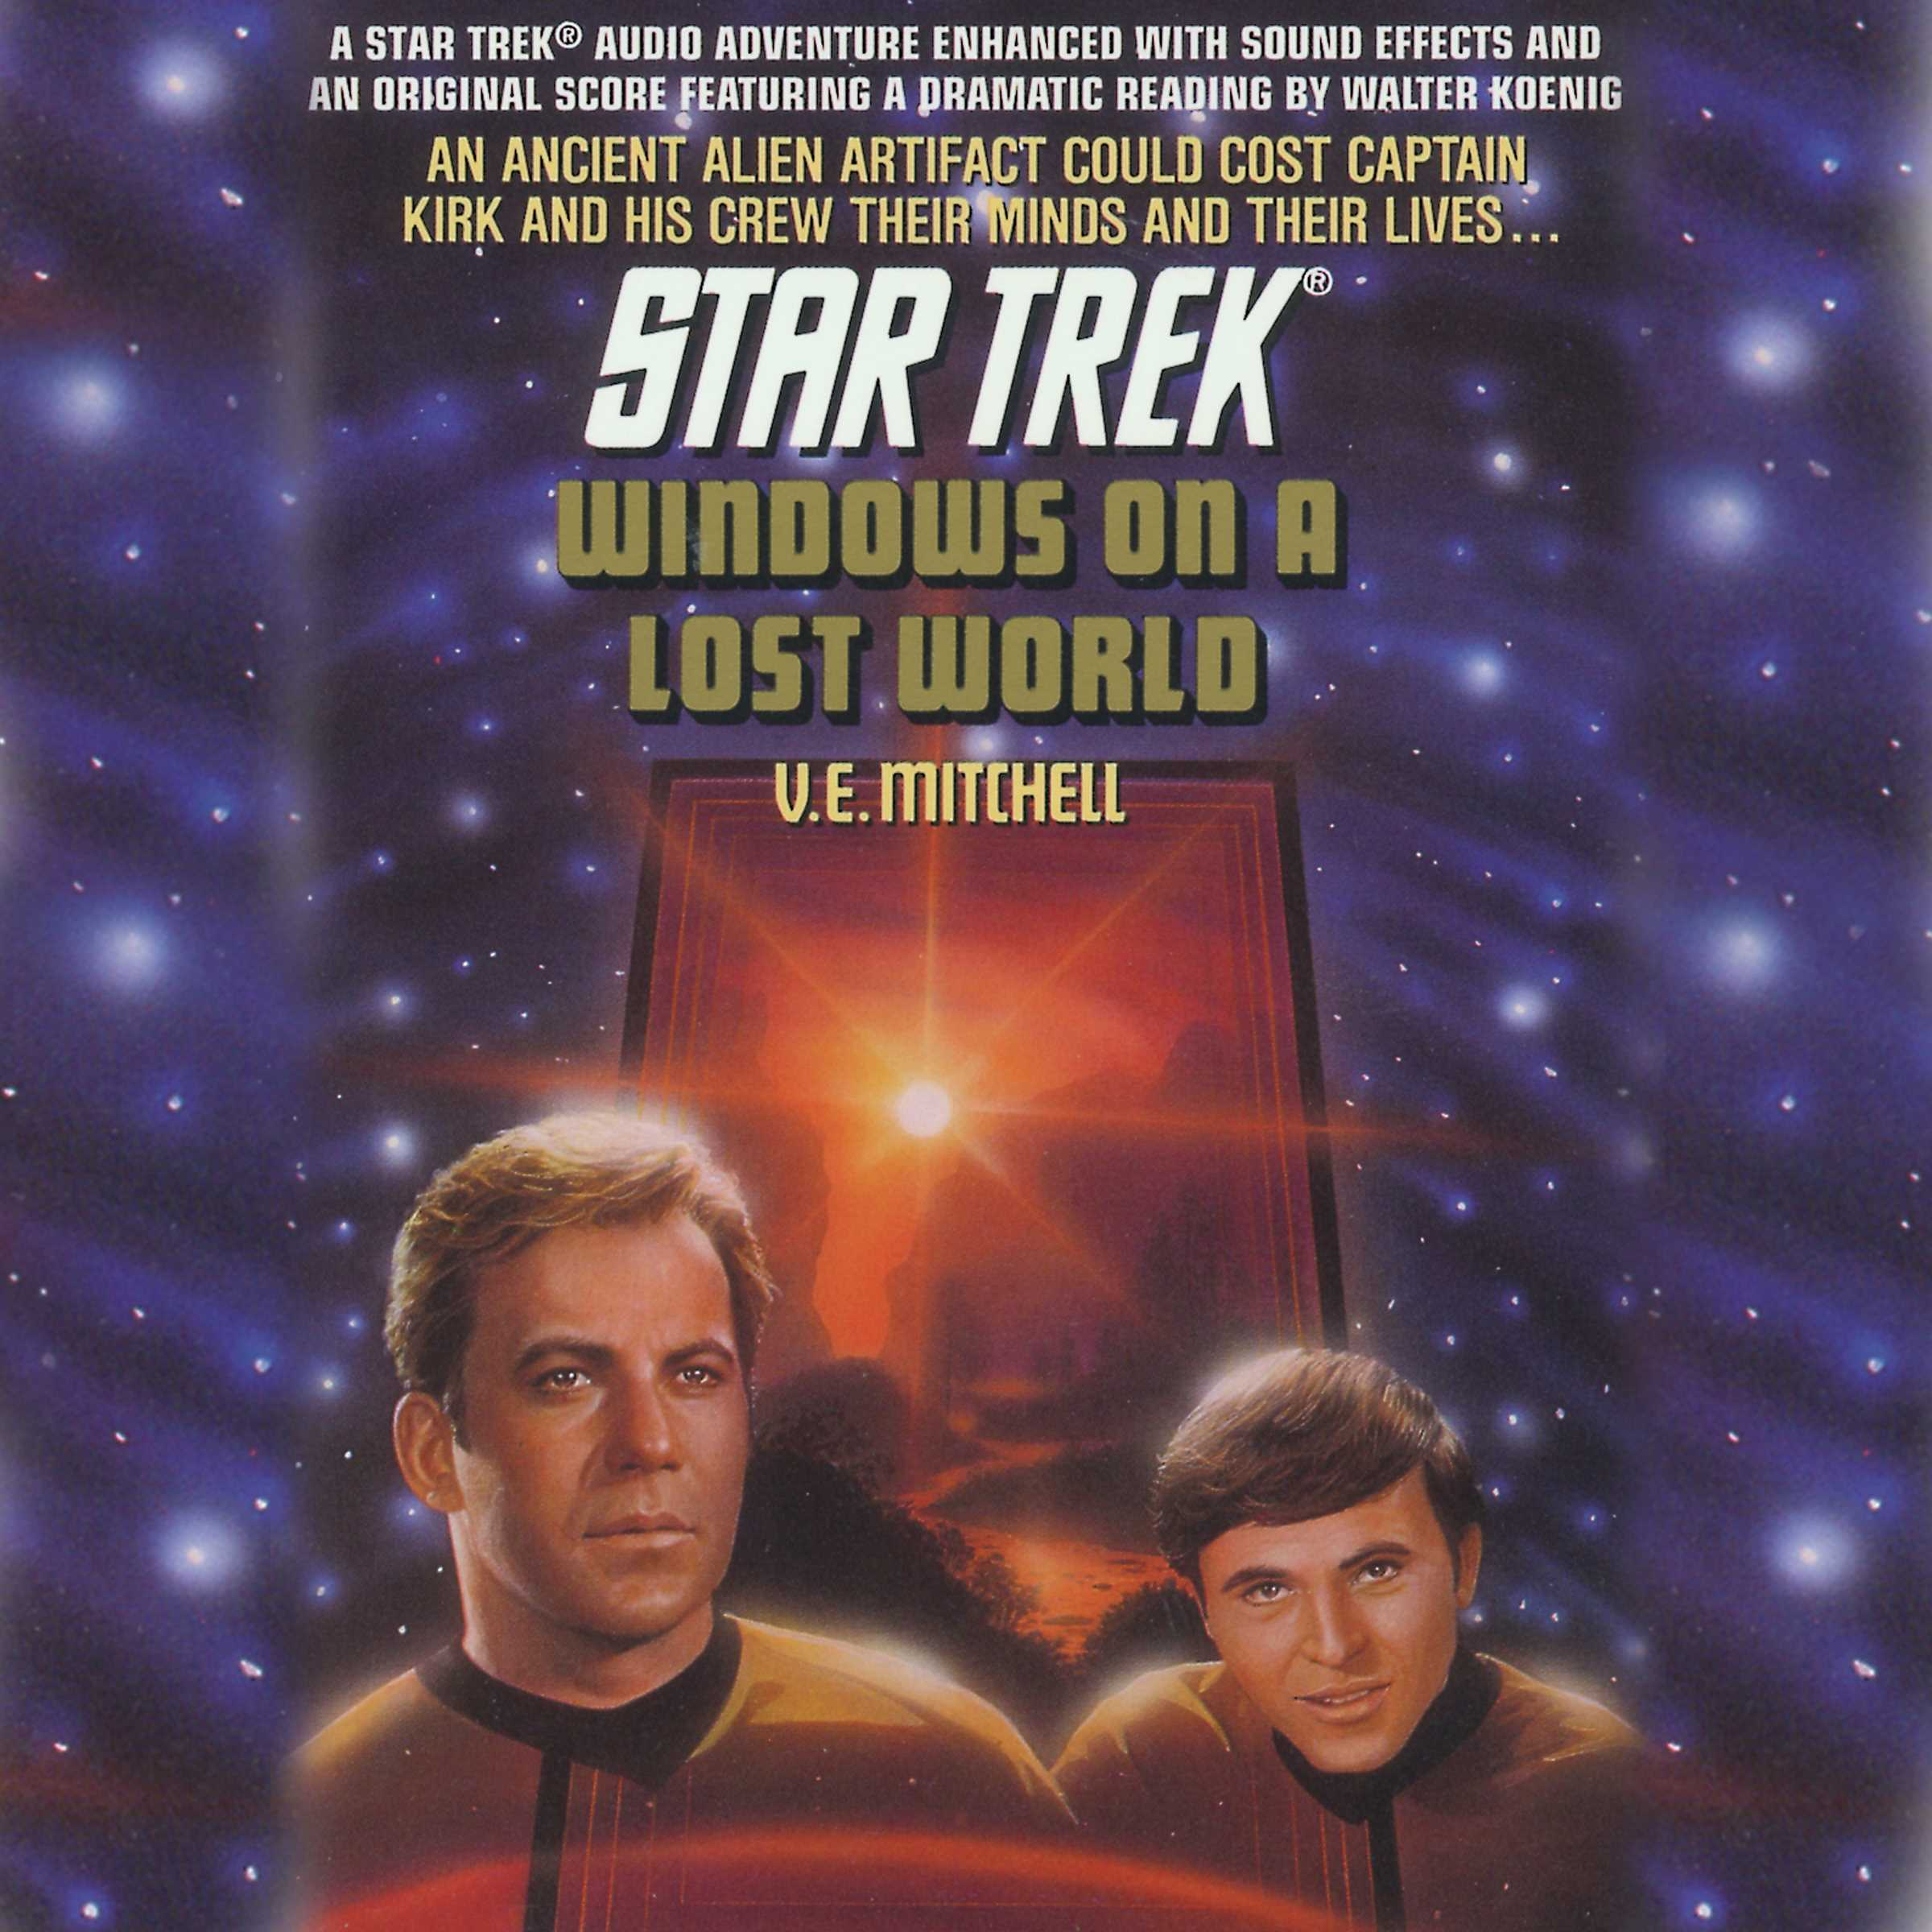 Star-trek-windows-on-a-lost-world-9780743546782_hr